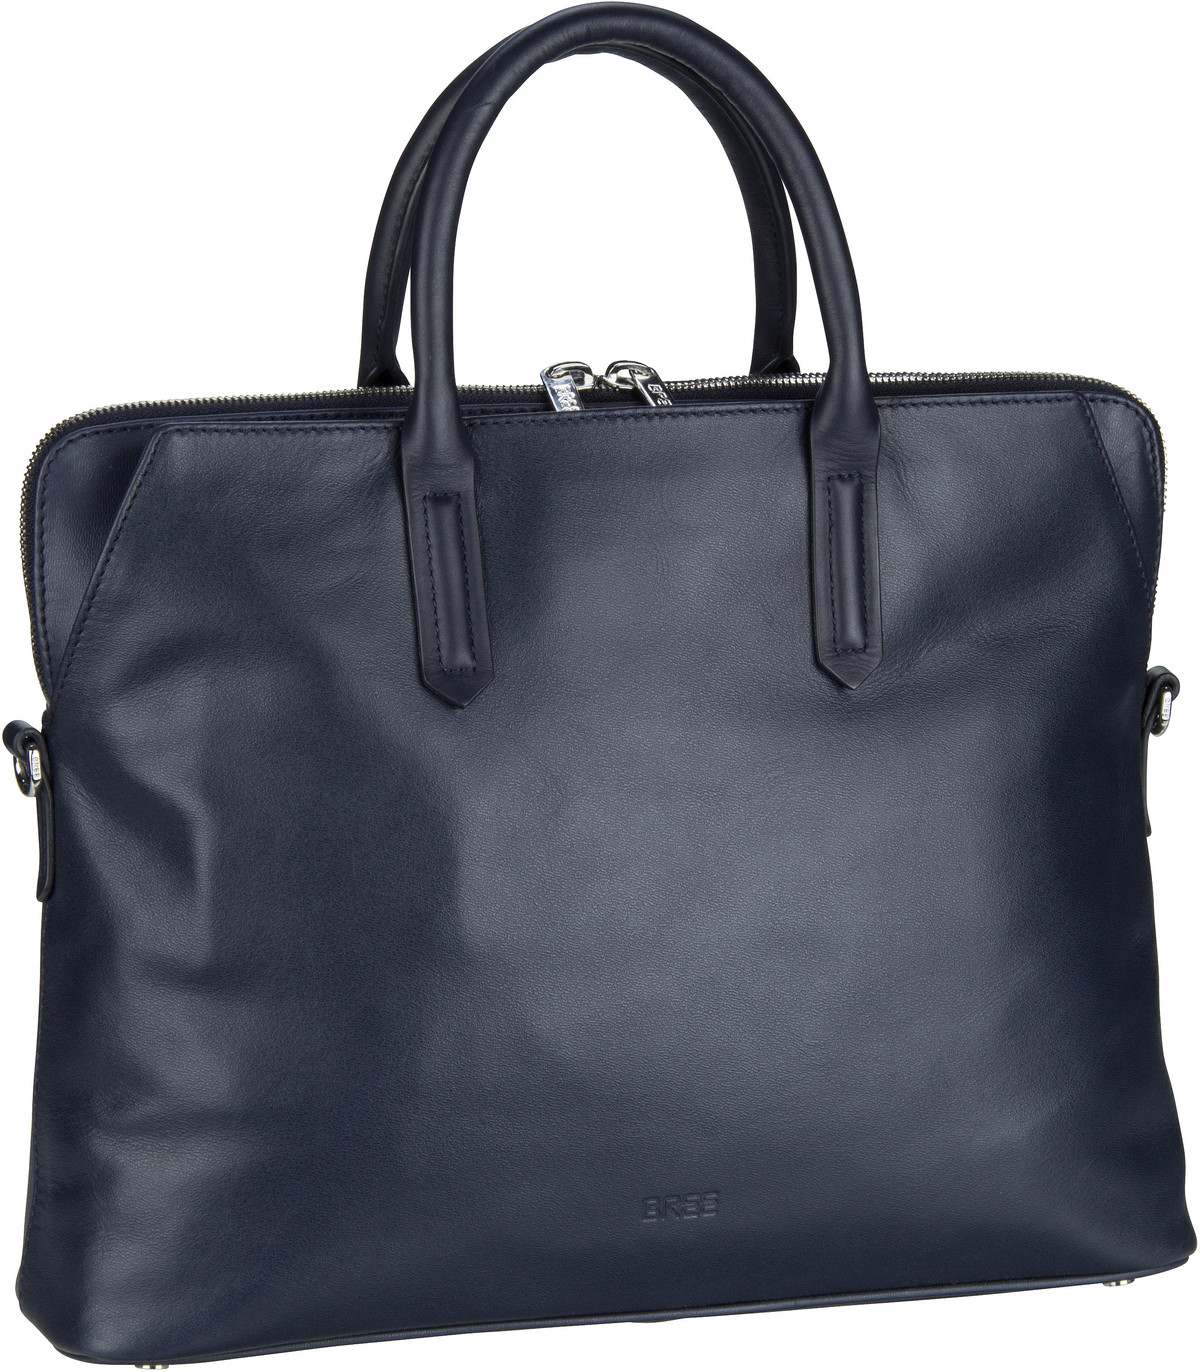 Handtasche Chicago 7 Navy Blazer